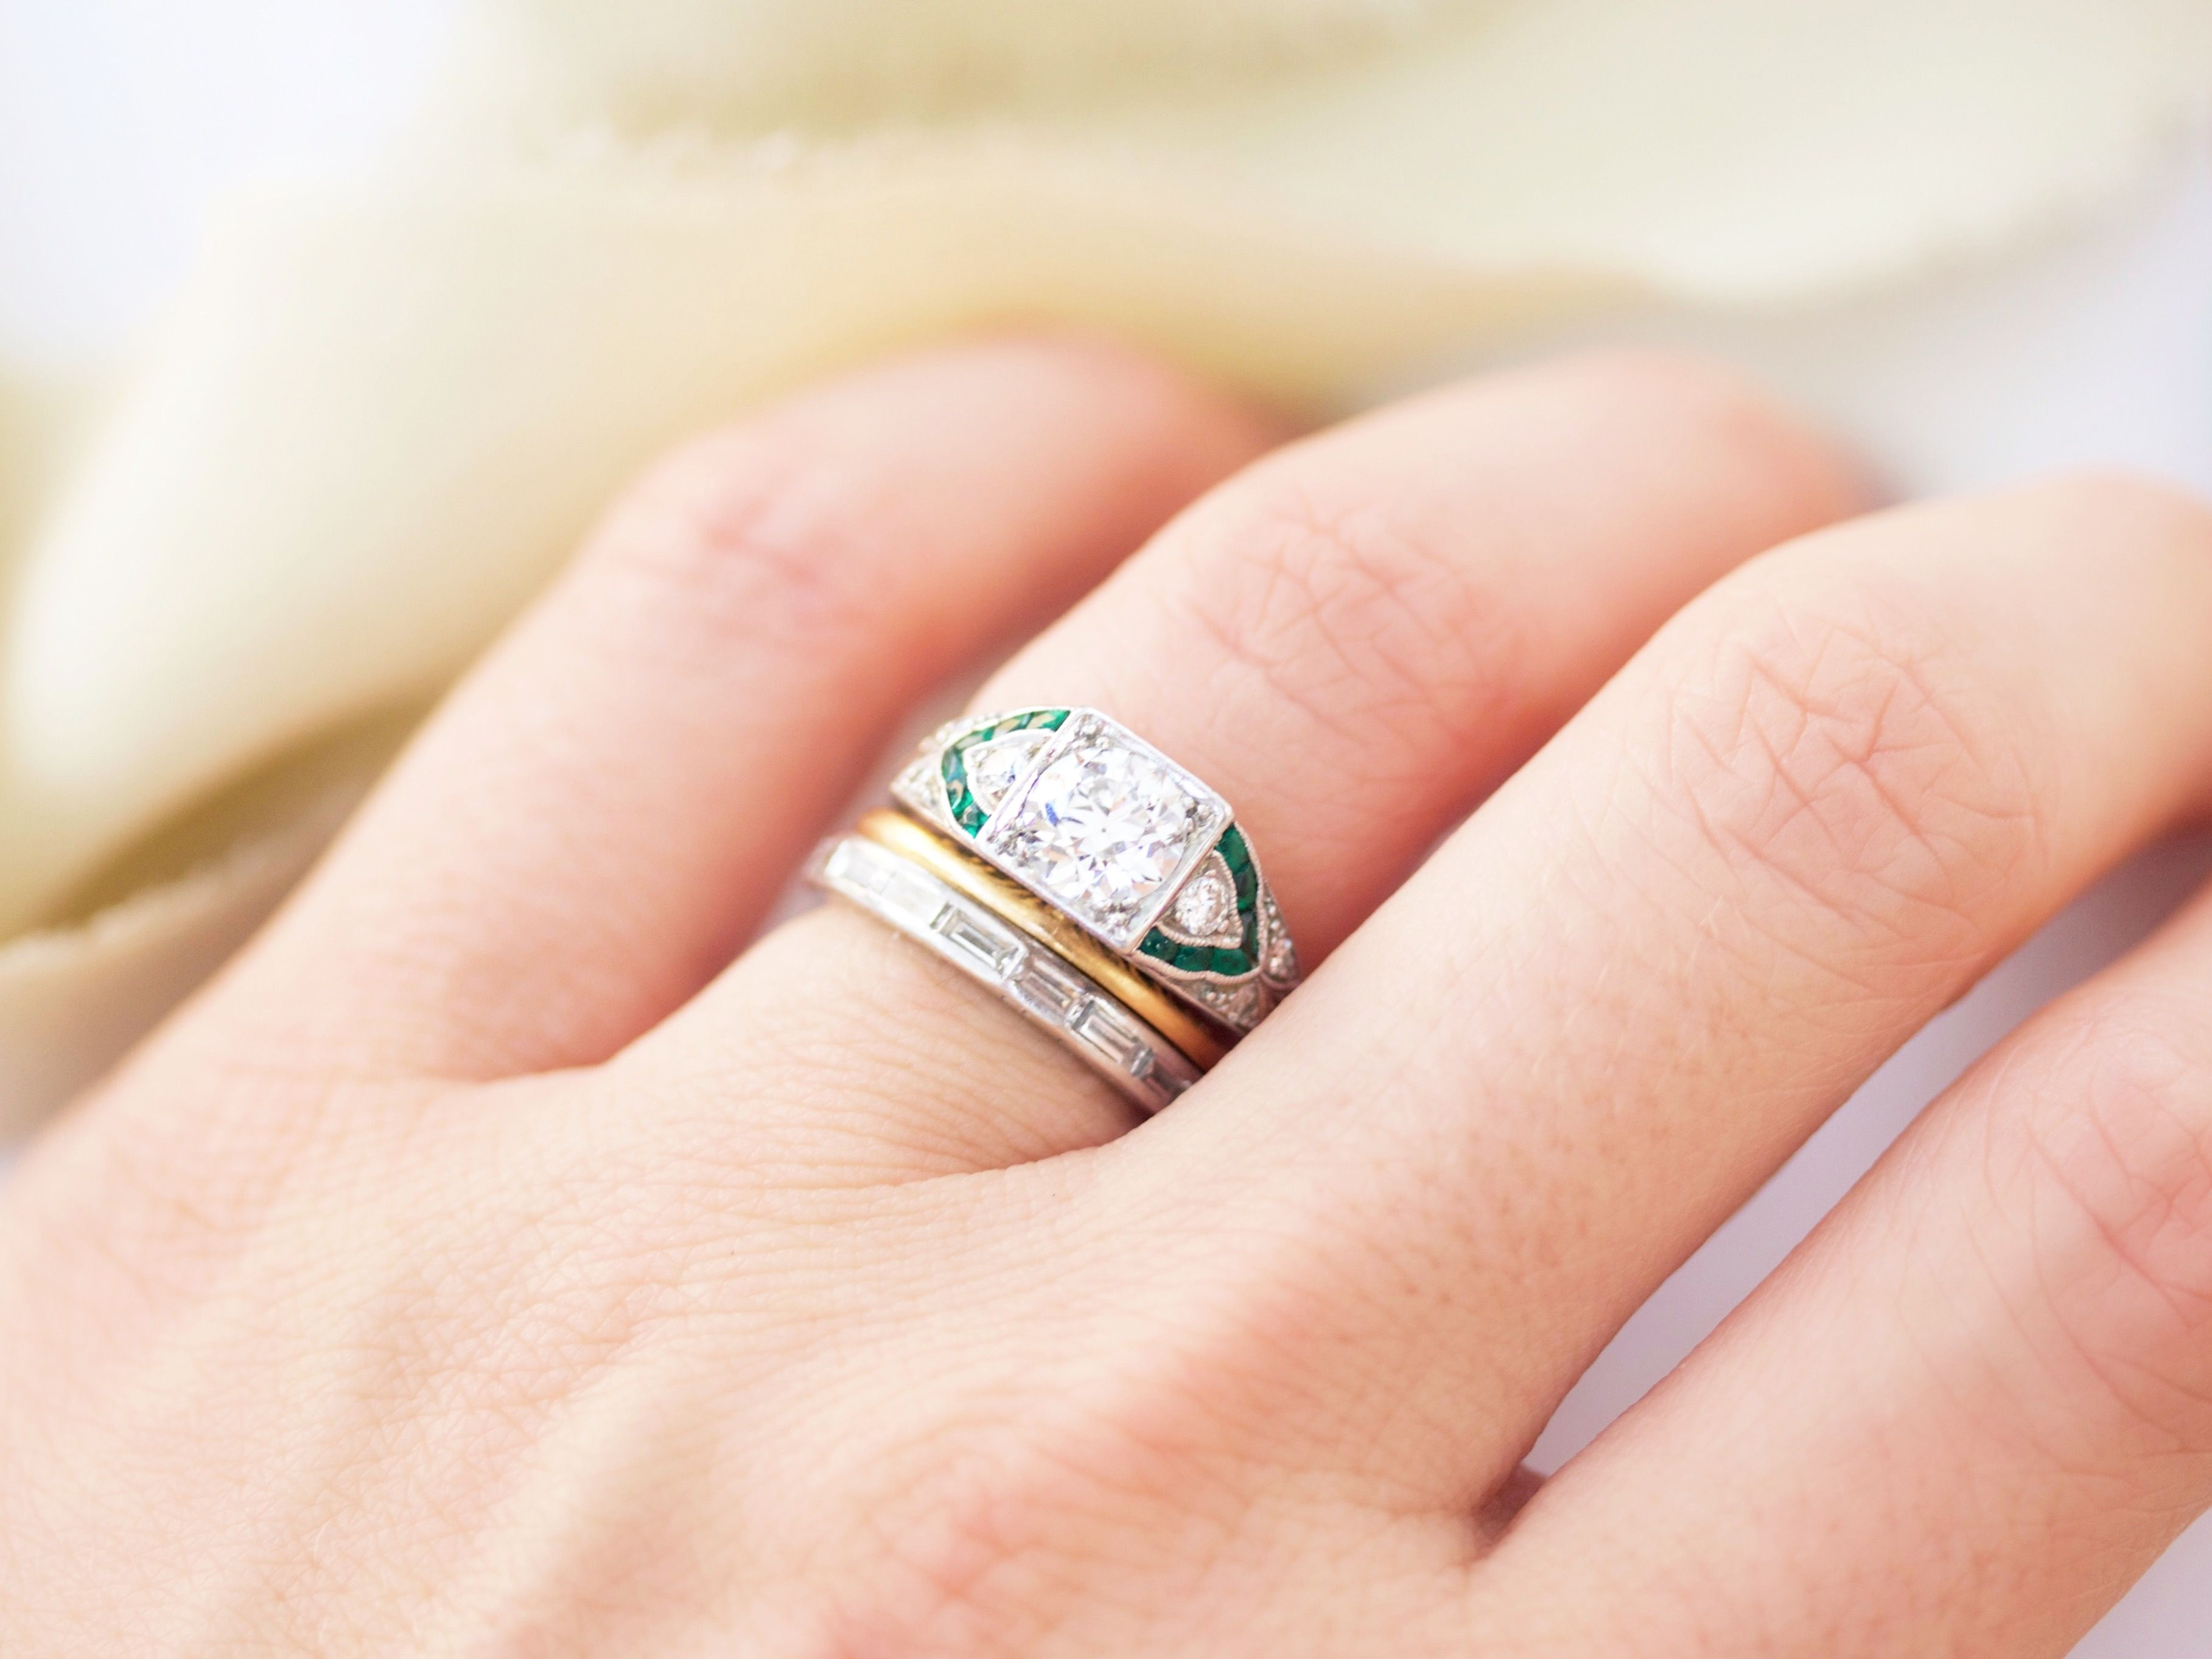 Art Deco Old European cut diamond in a platinum setting with green emerald accents from Victor Barbone Jewelry!